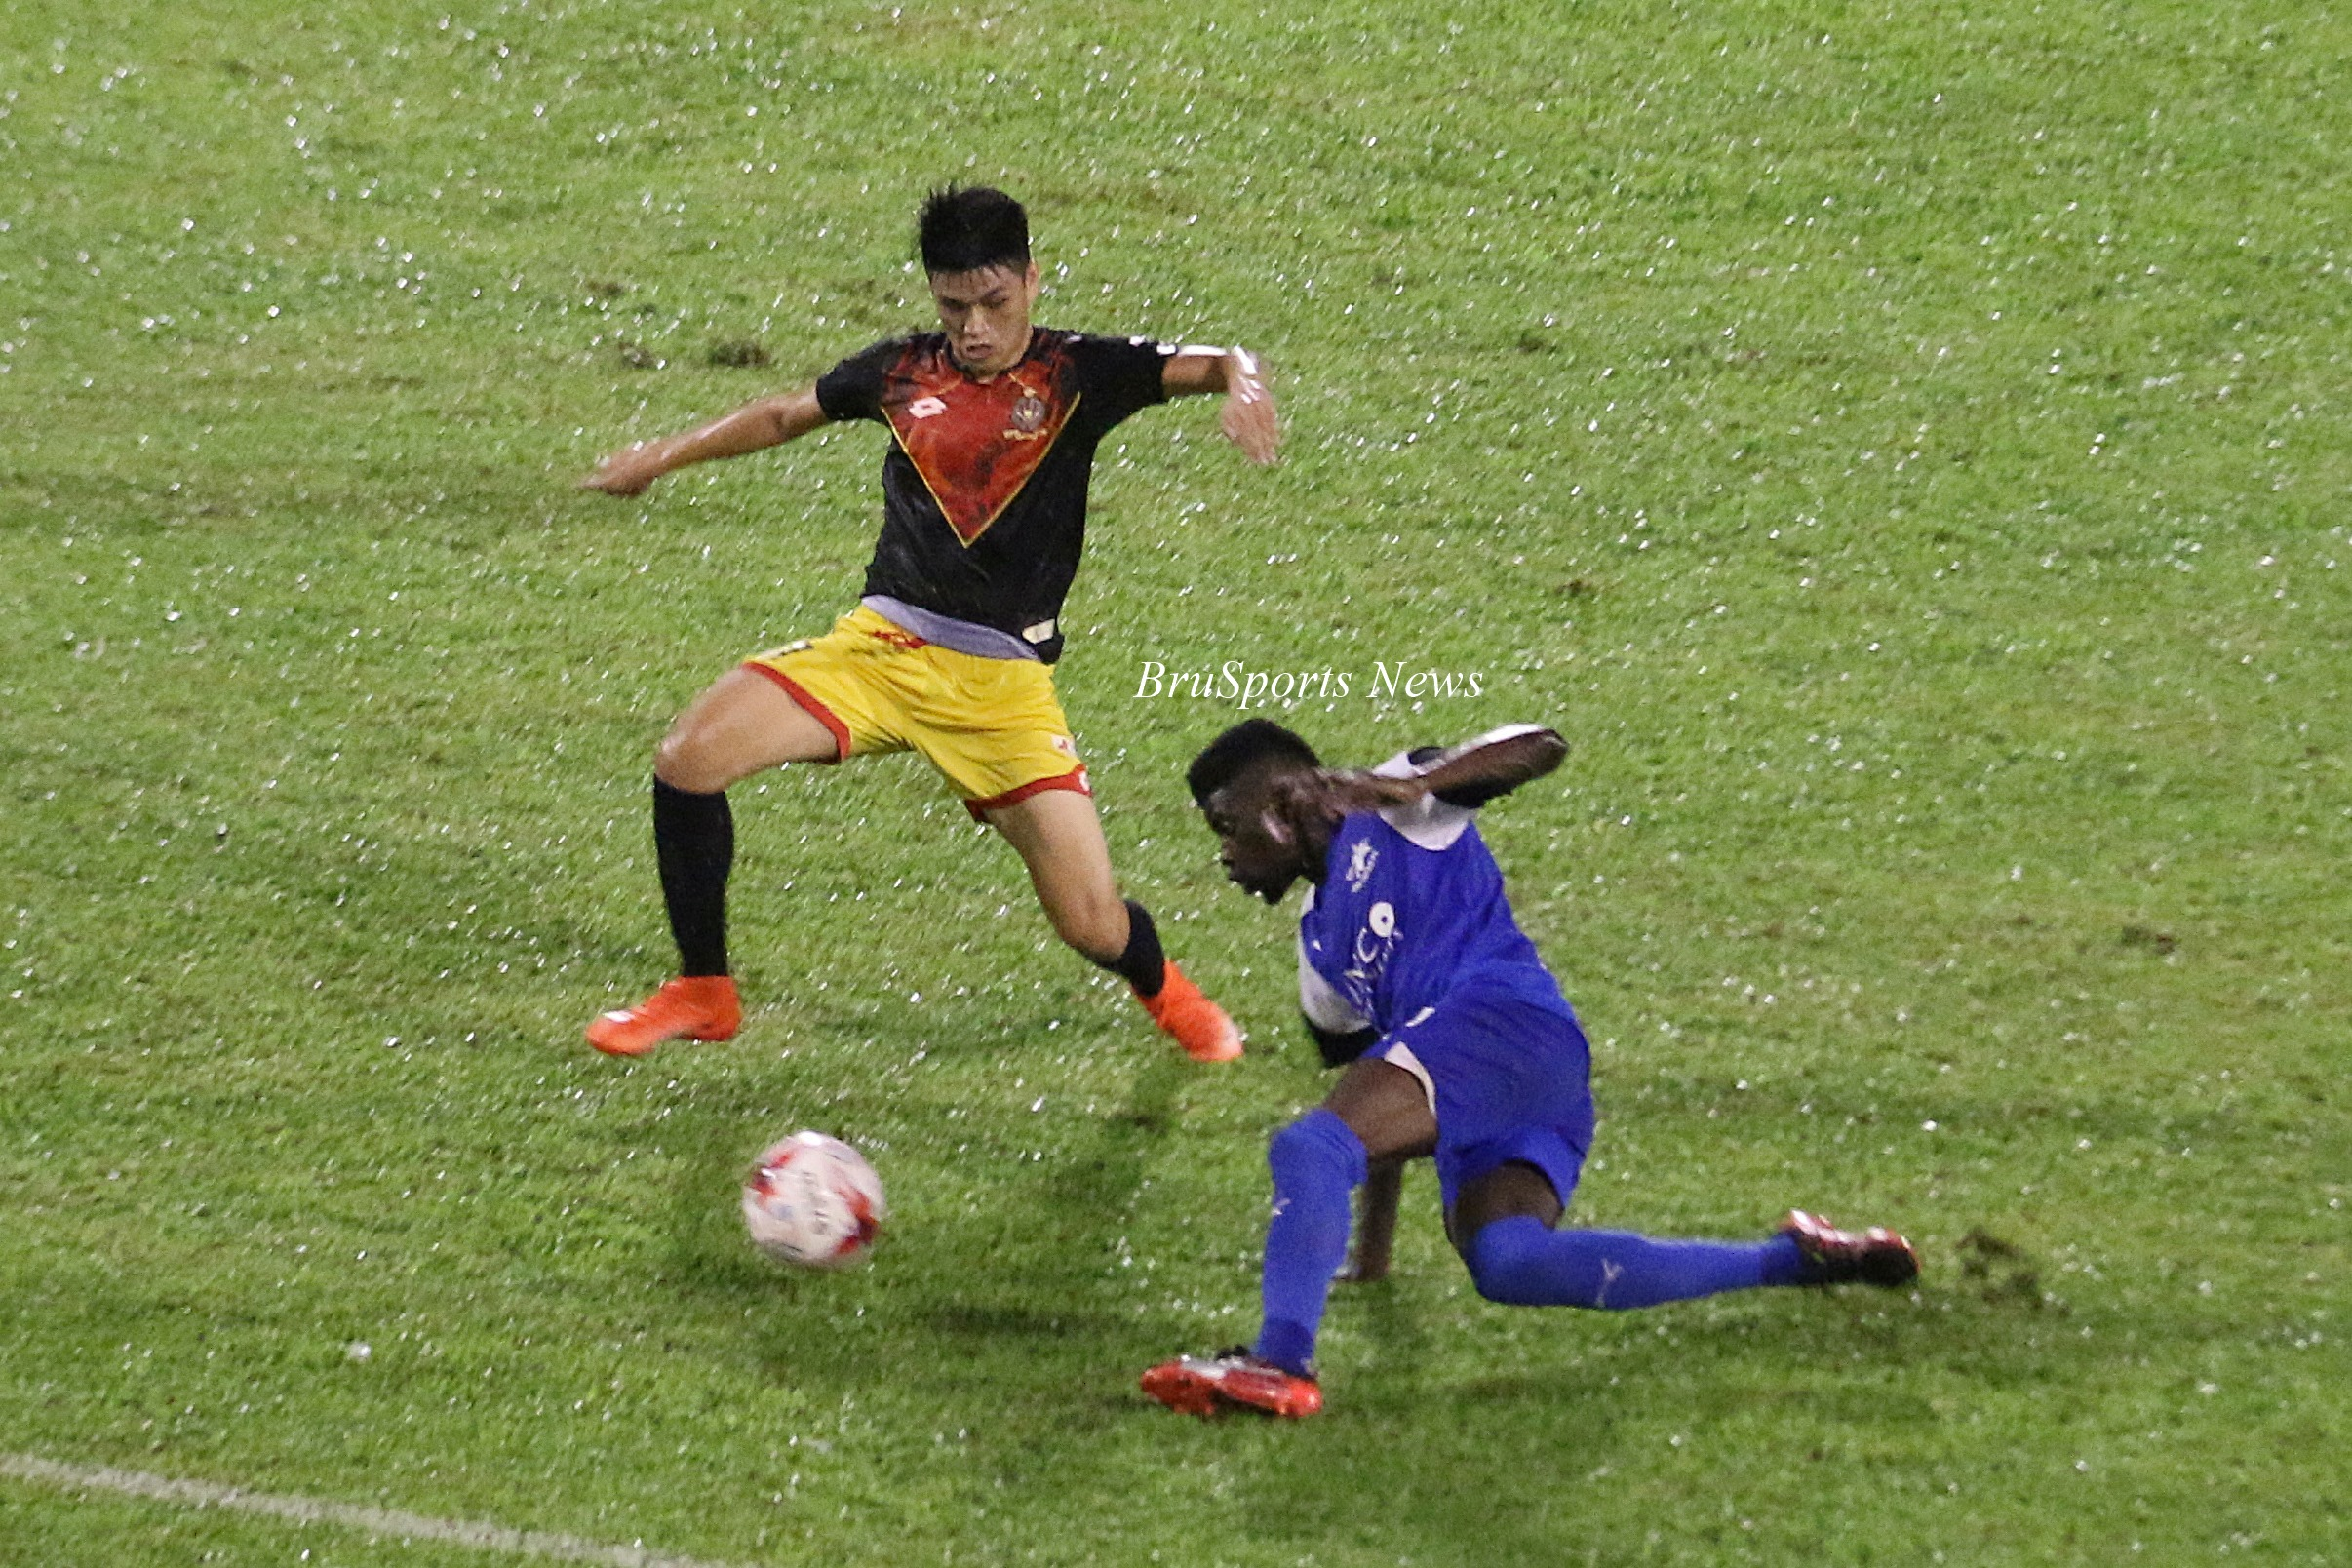 DPMM FC suffer against Protectors due to poor refereeing